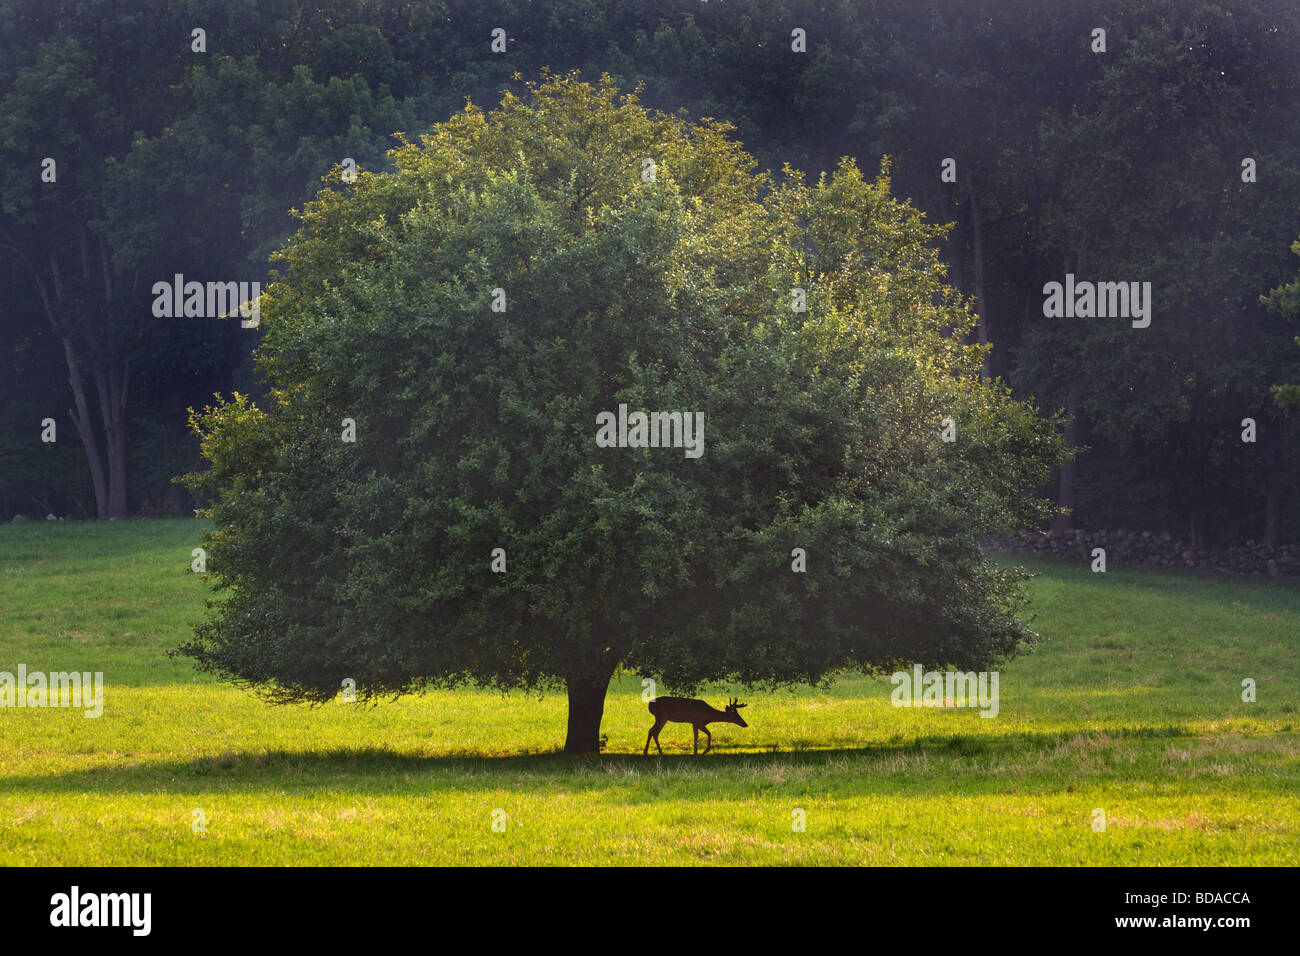 A young Stag under a tree in Orange Connecticut USA - Stock Image